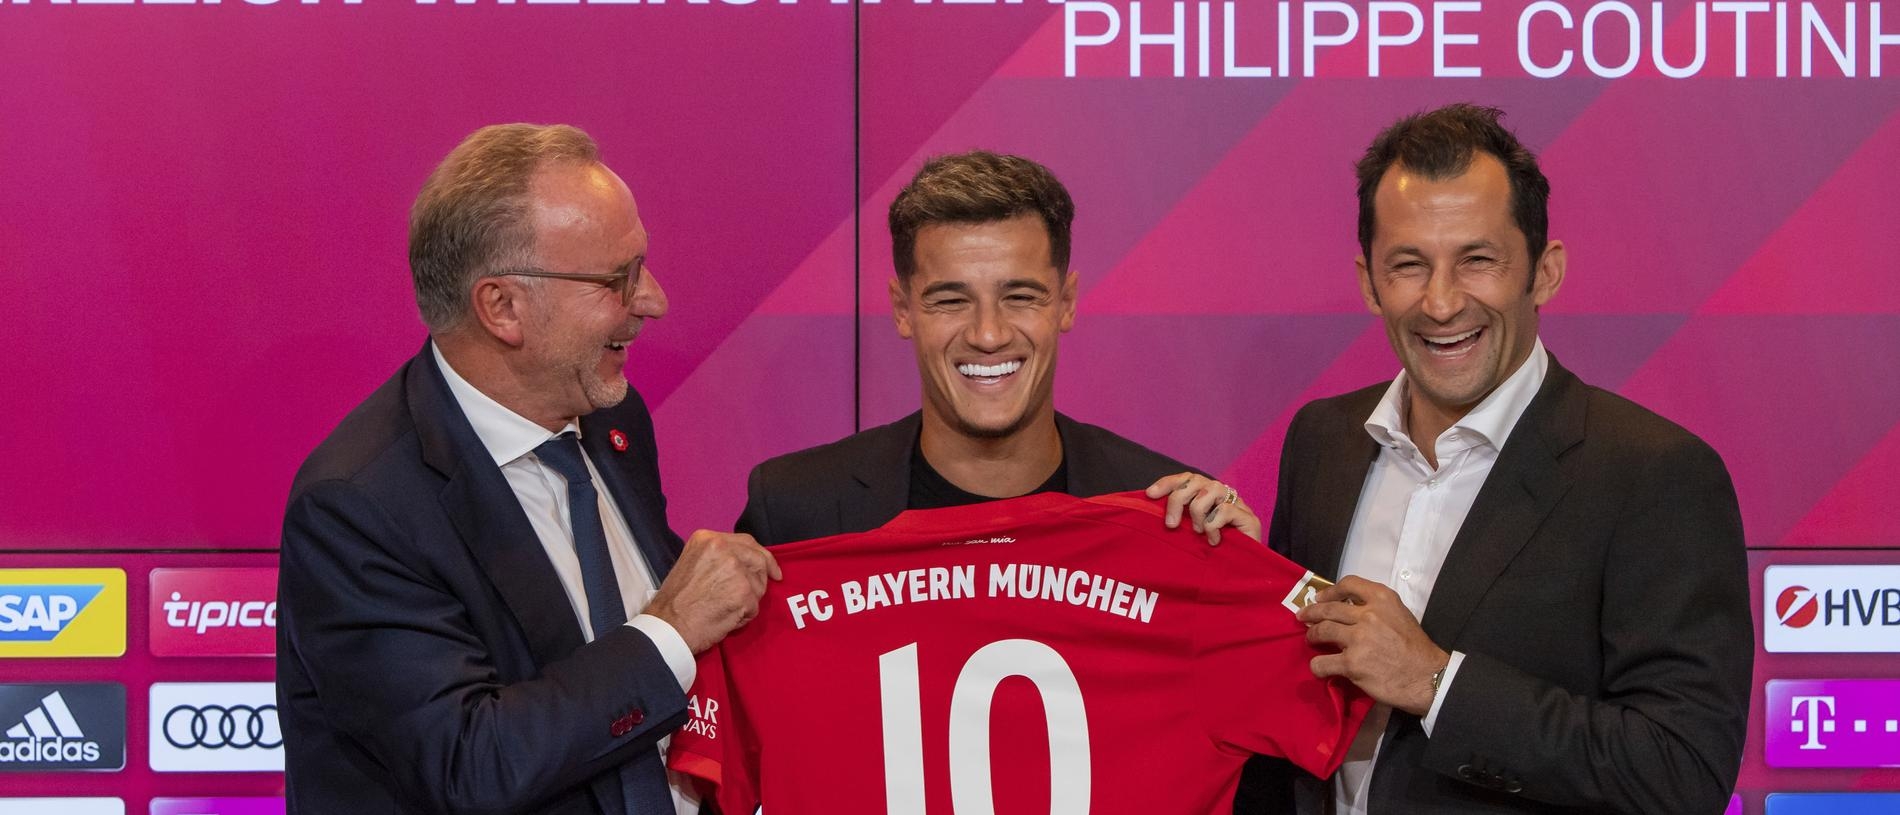 New player for Bayern Munich Philippe Coutinho, center, holds up a team shirt with his name on it with Karl-Heinz Rummenigge, left,  and coach Hasan Salihamidzic during a presser in their stadium in Munich, Germany, Monday, Aug. 19, 2019. Coutinho comes as a loaner for one year from FC Barcelona. (Peter Kneffel/dpa via AP)